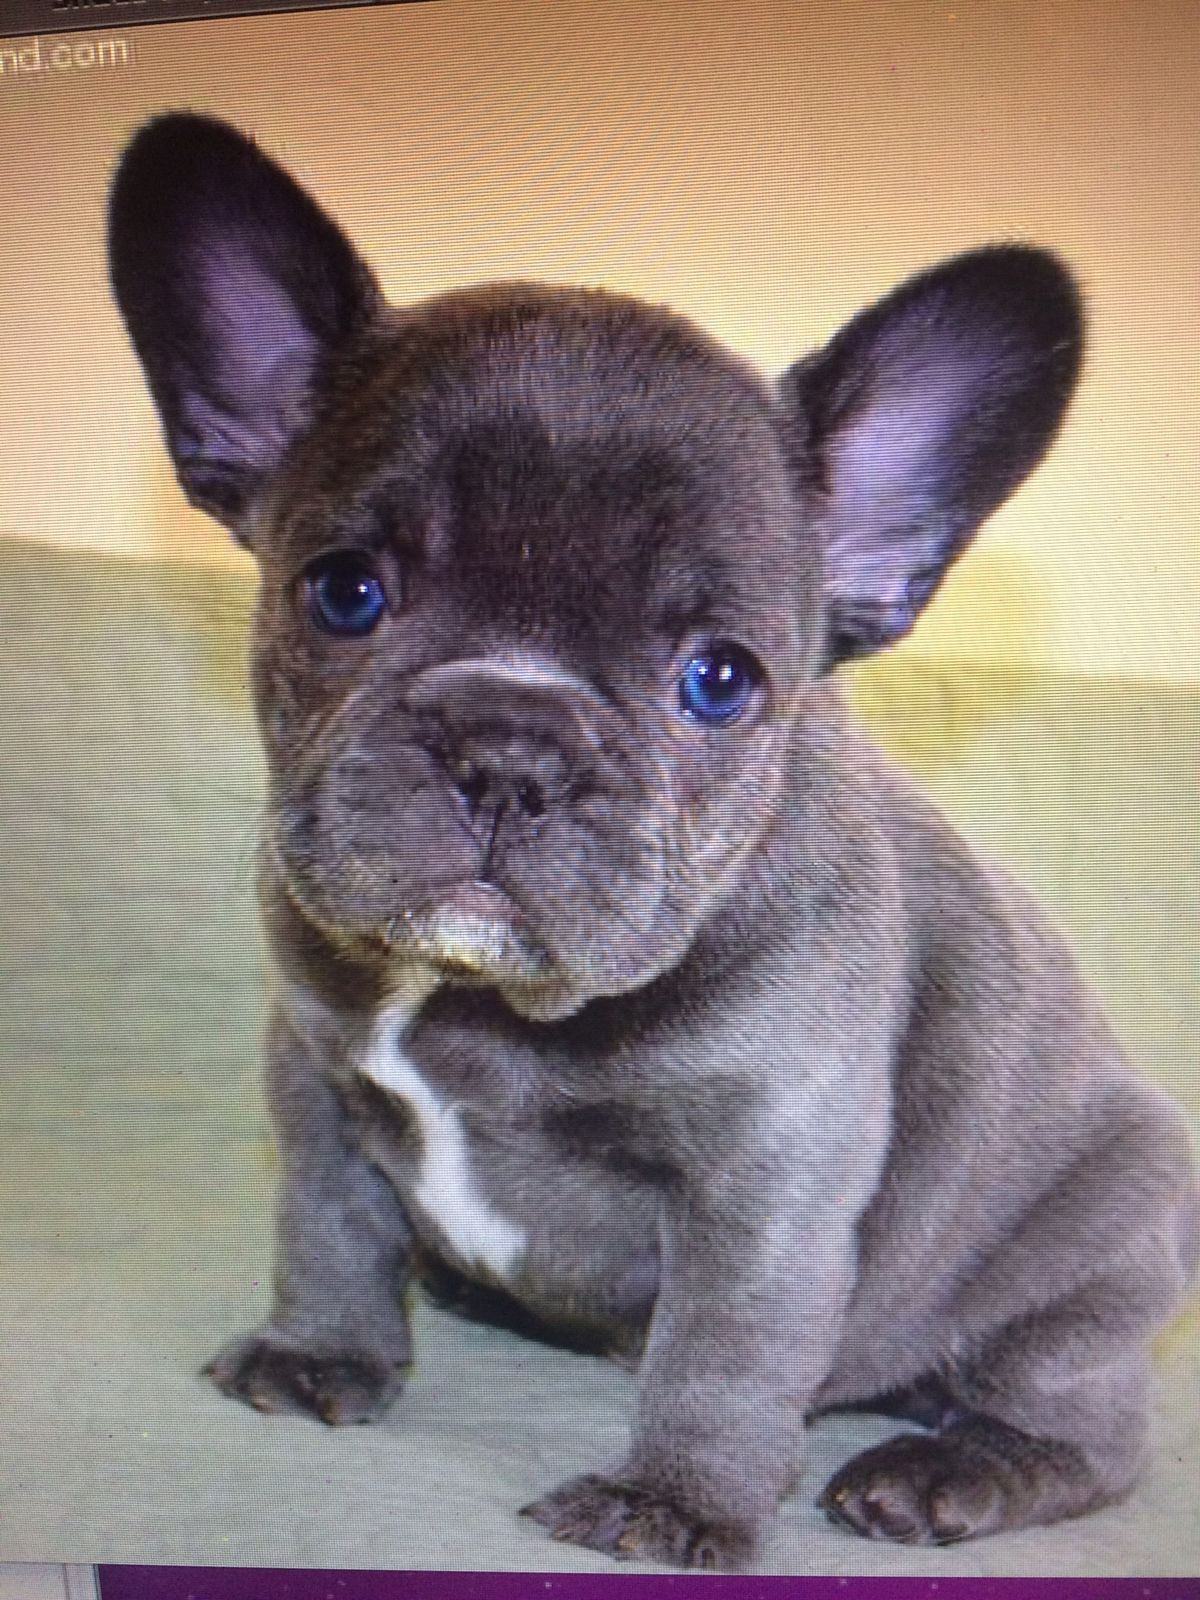 7264558461238f92710efae243643ed9 Jpg 1 200 1 600 Pixels Really Cute Puppies French Bulldog Puppies Cute Little Puppies